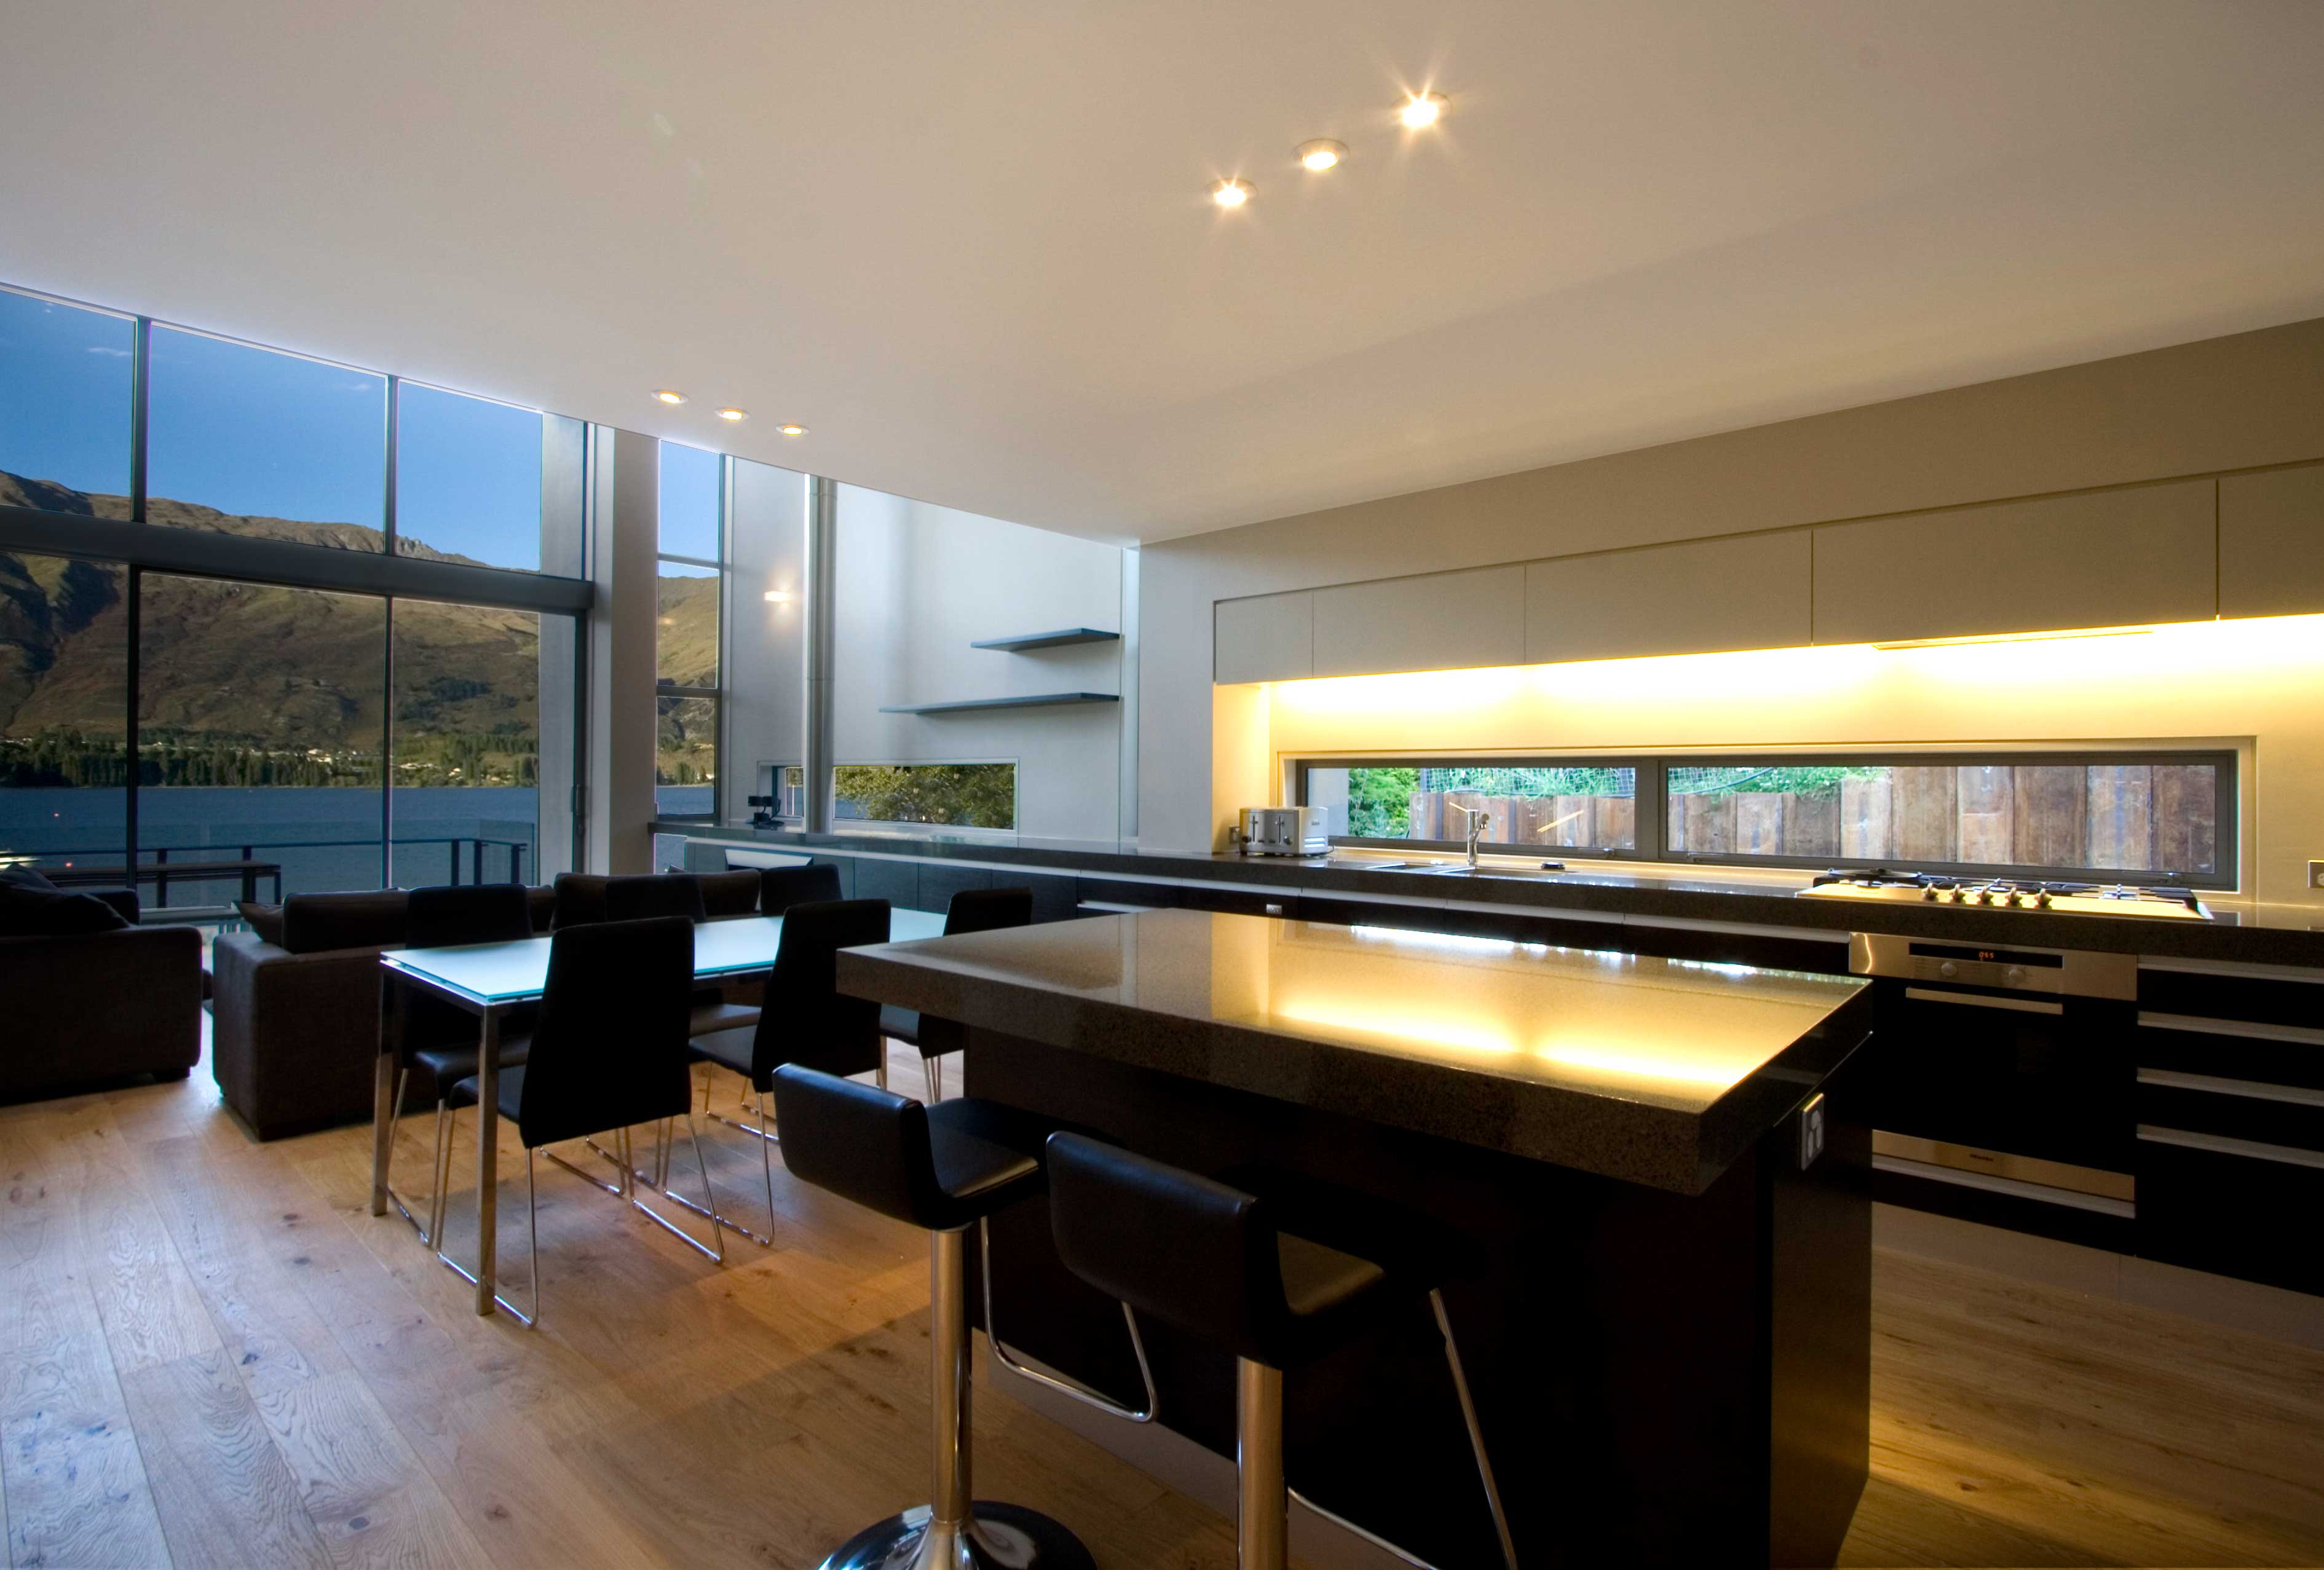 Dining and kitchen area with views to the lake